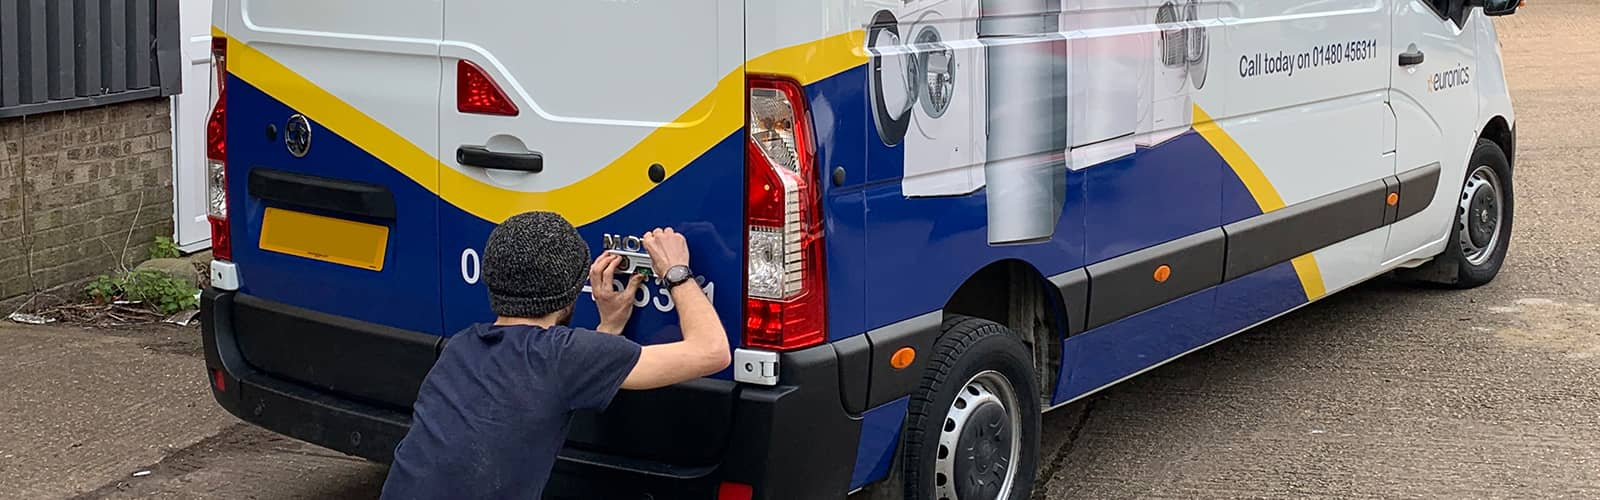 Check the quality of your van graphics